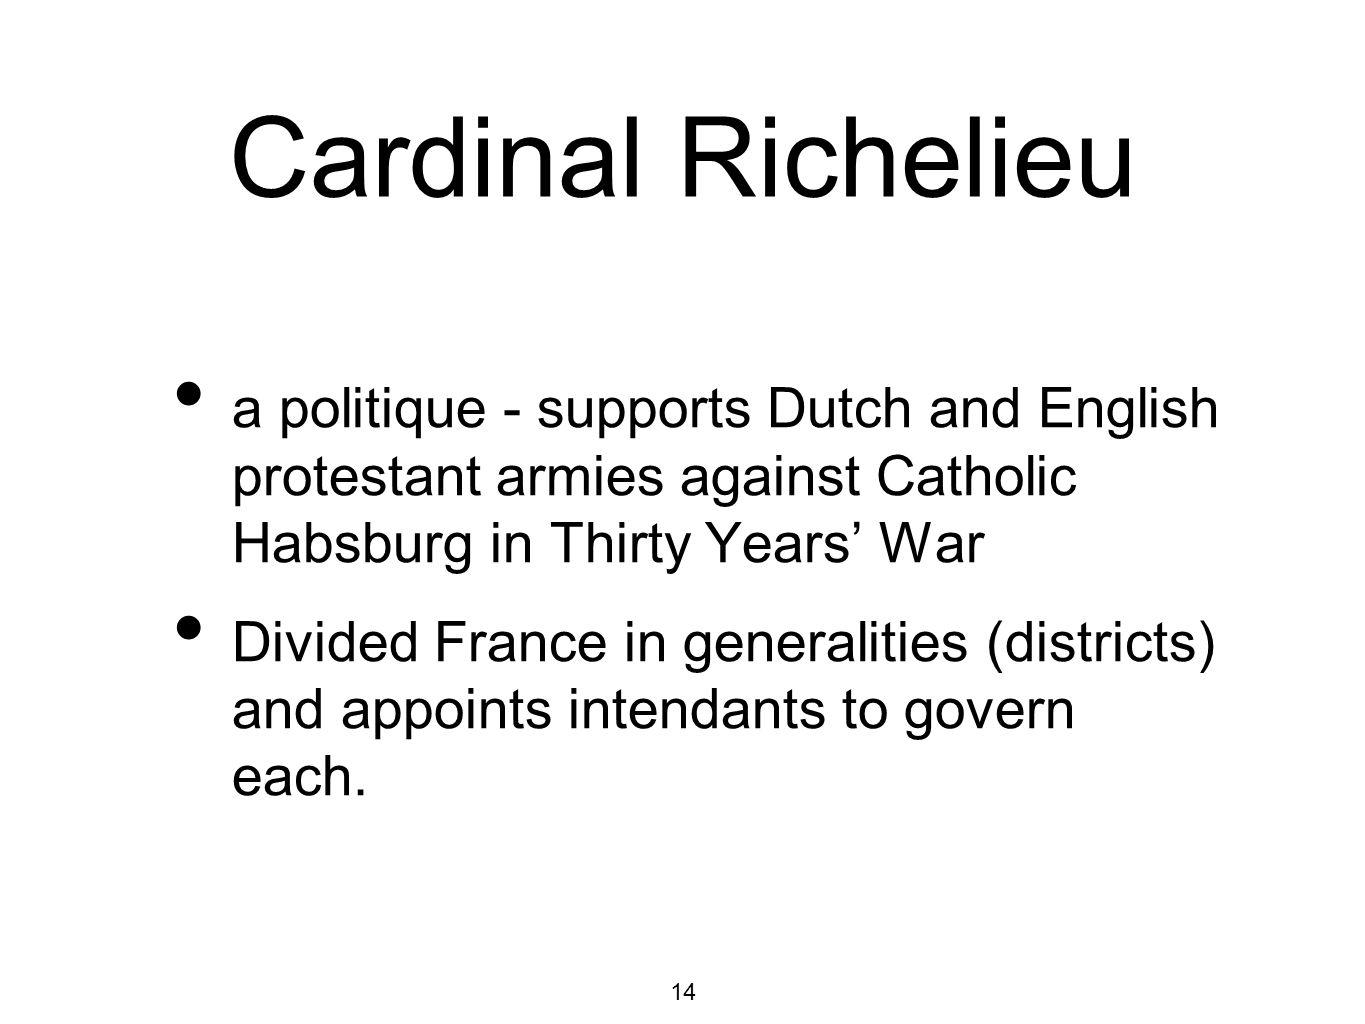 Cardinal Richelieu a politique - supports Dutch and English protestant armies against Catholic Habsburg in Thirty Years' War.